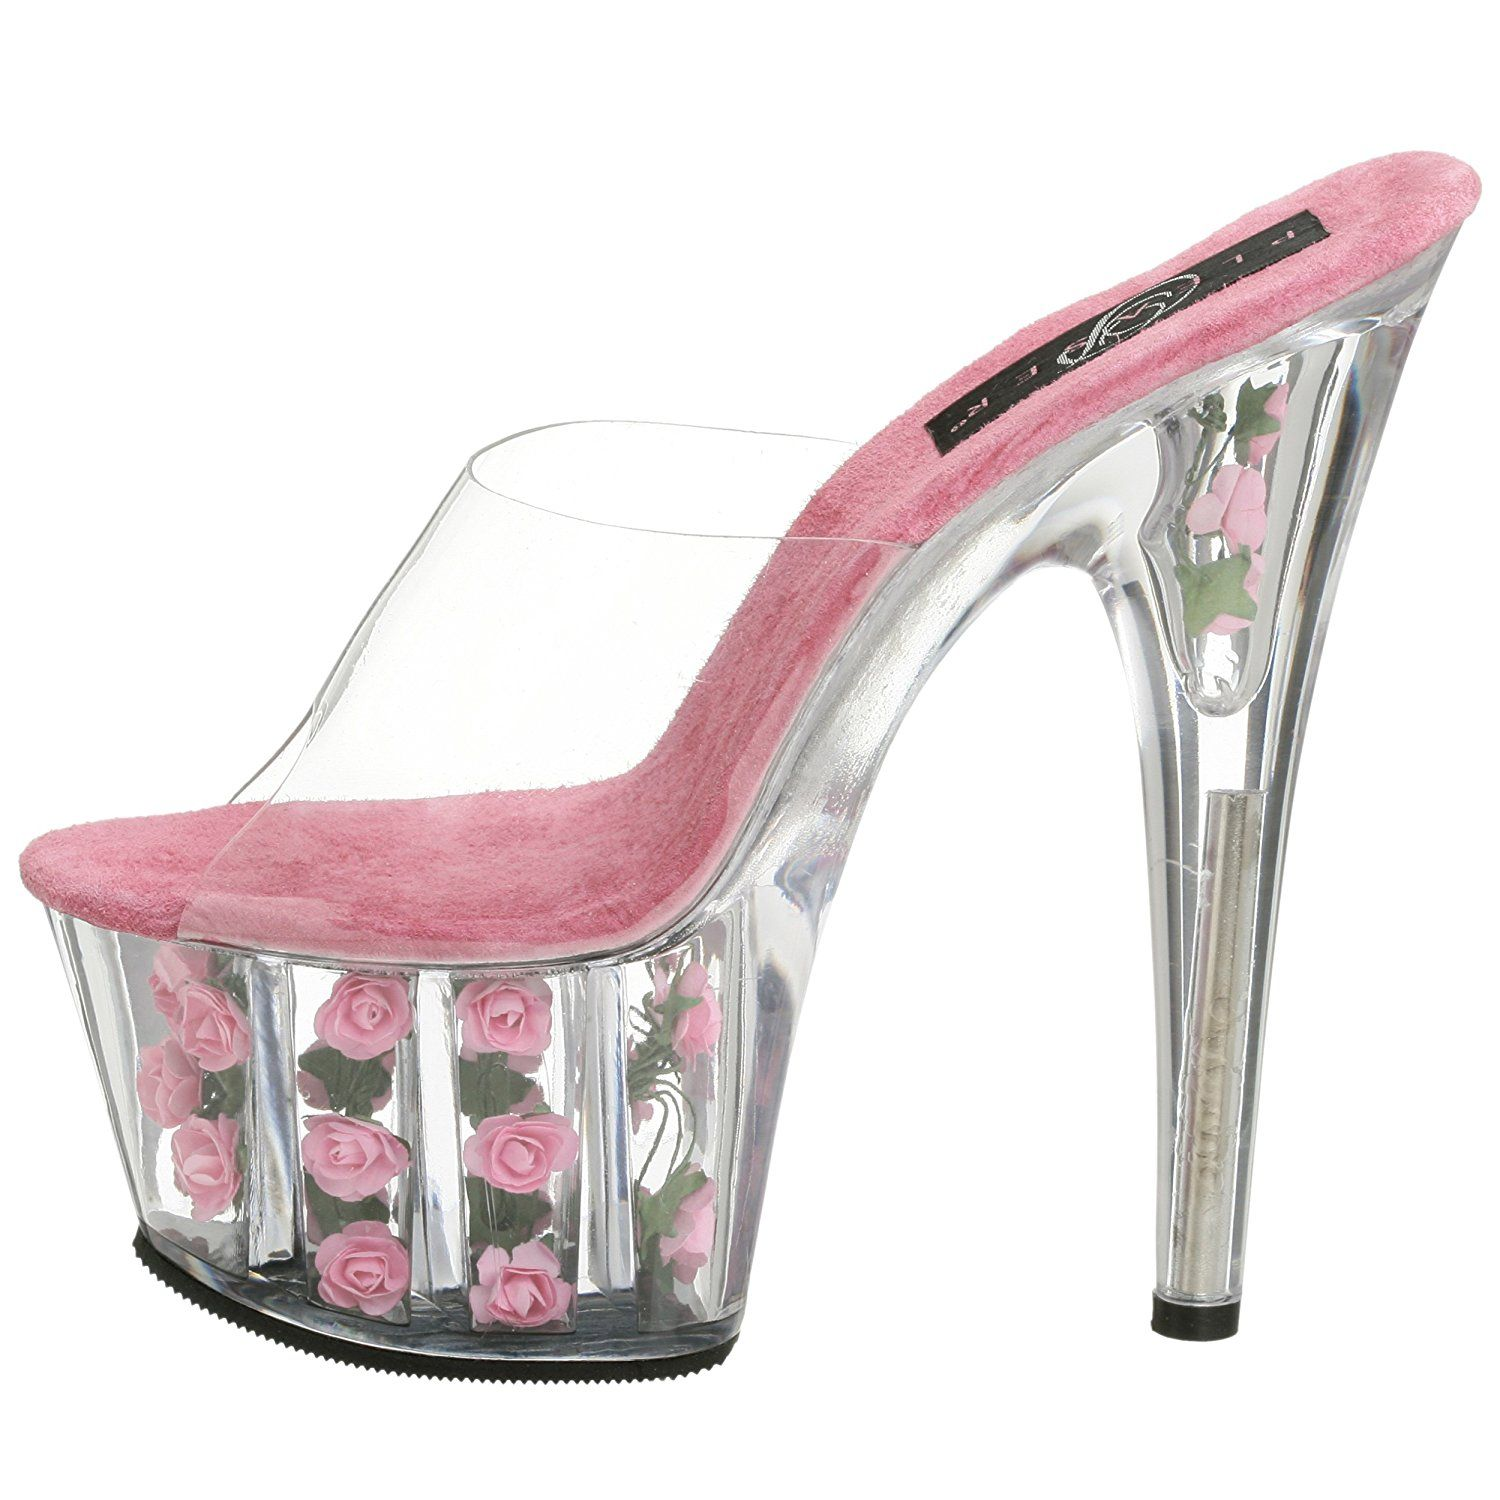 Pleaser Adore 701FL(Women's) -Clear/Hot Pink Flowers Free Shipping Geniue Stockist I8Guj2op